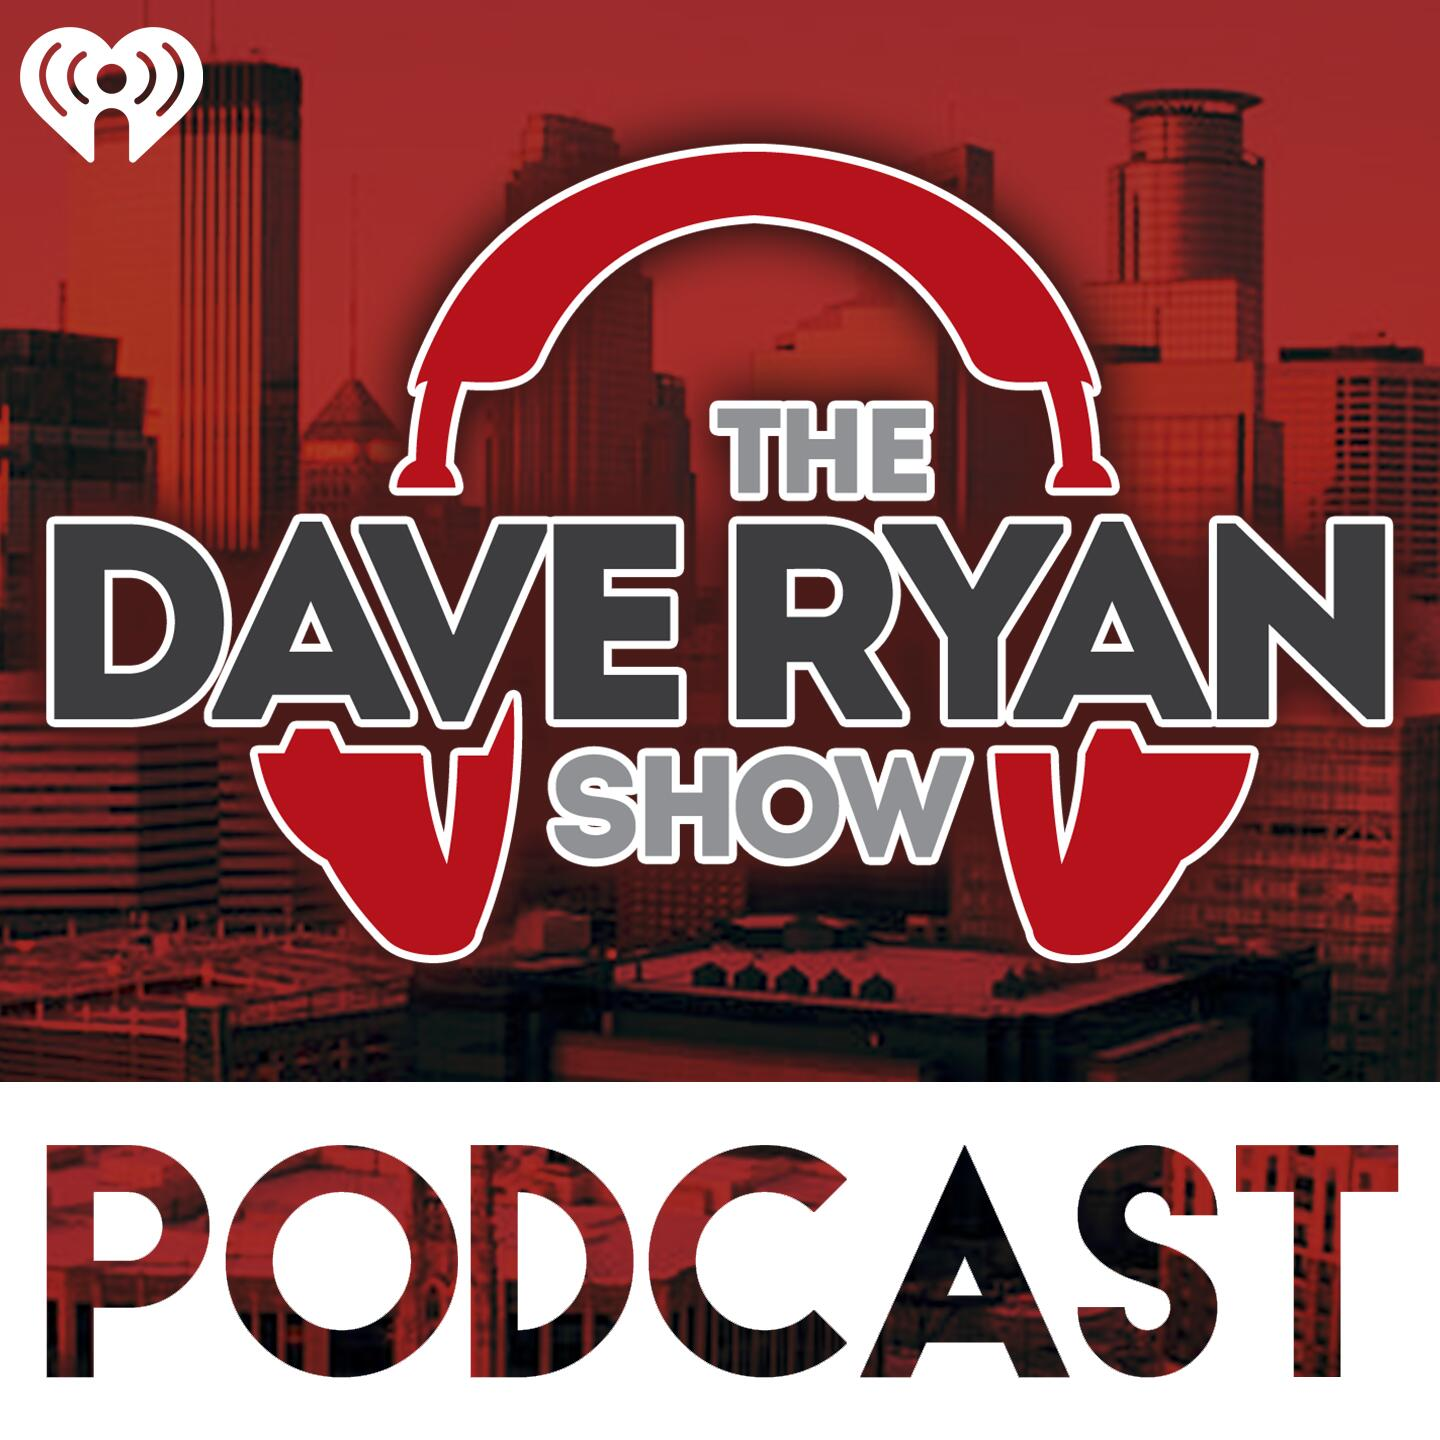 Listen to the The Dave Ryan Show Episode - Was It Your 4th Nipple? on iHeartRadio | iHeartRadio